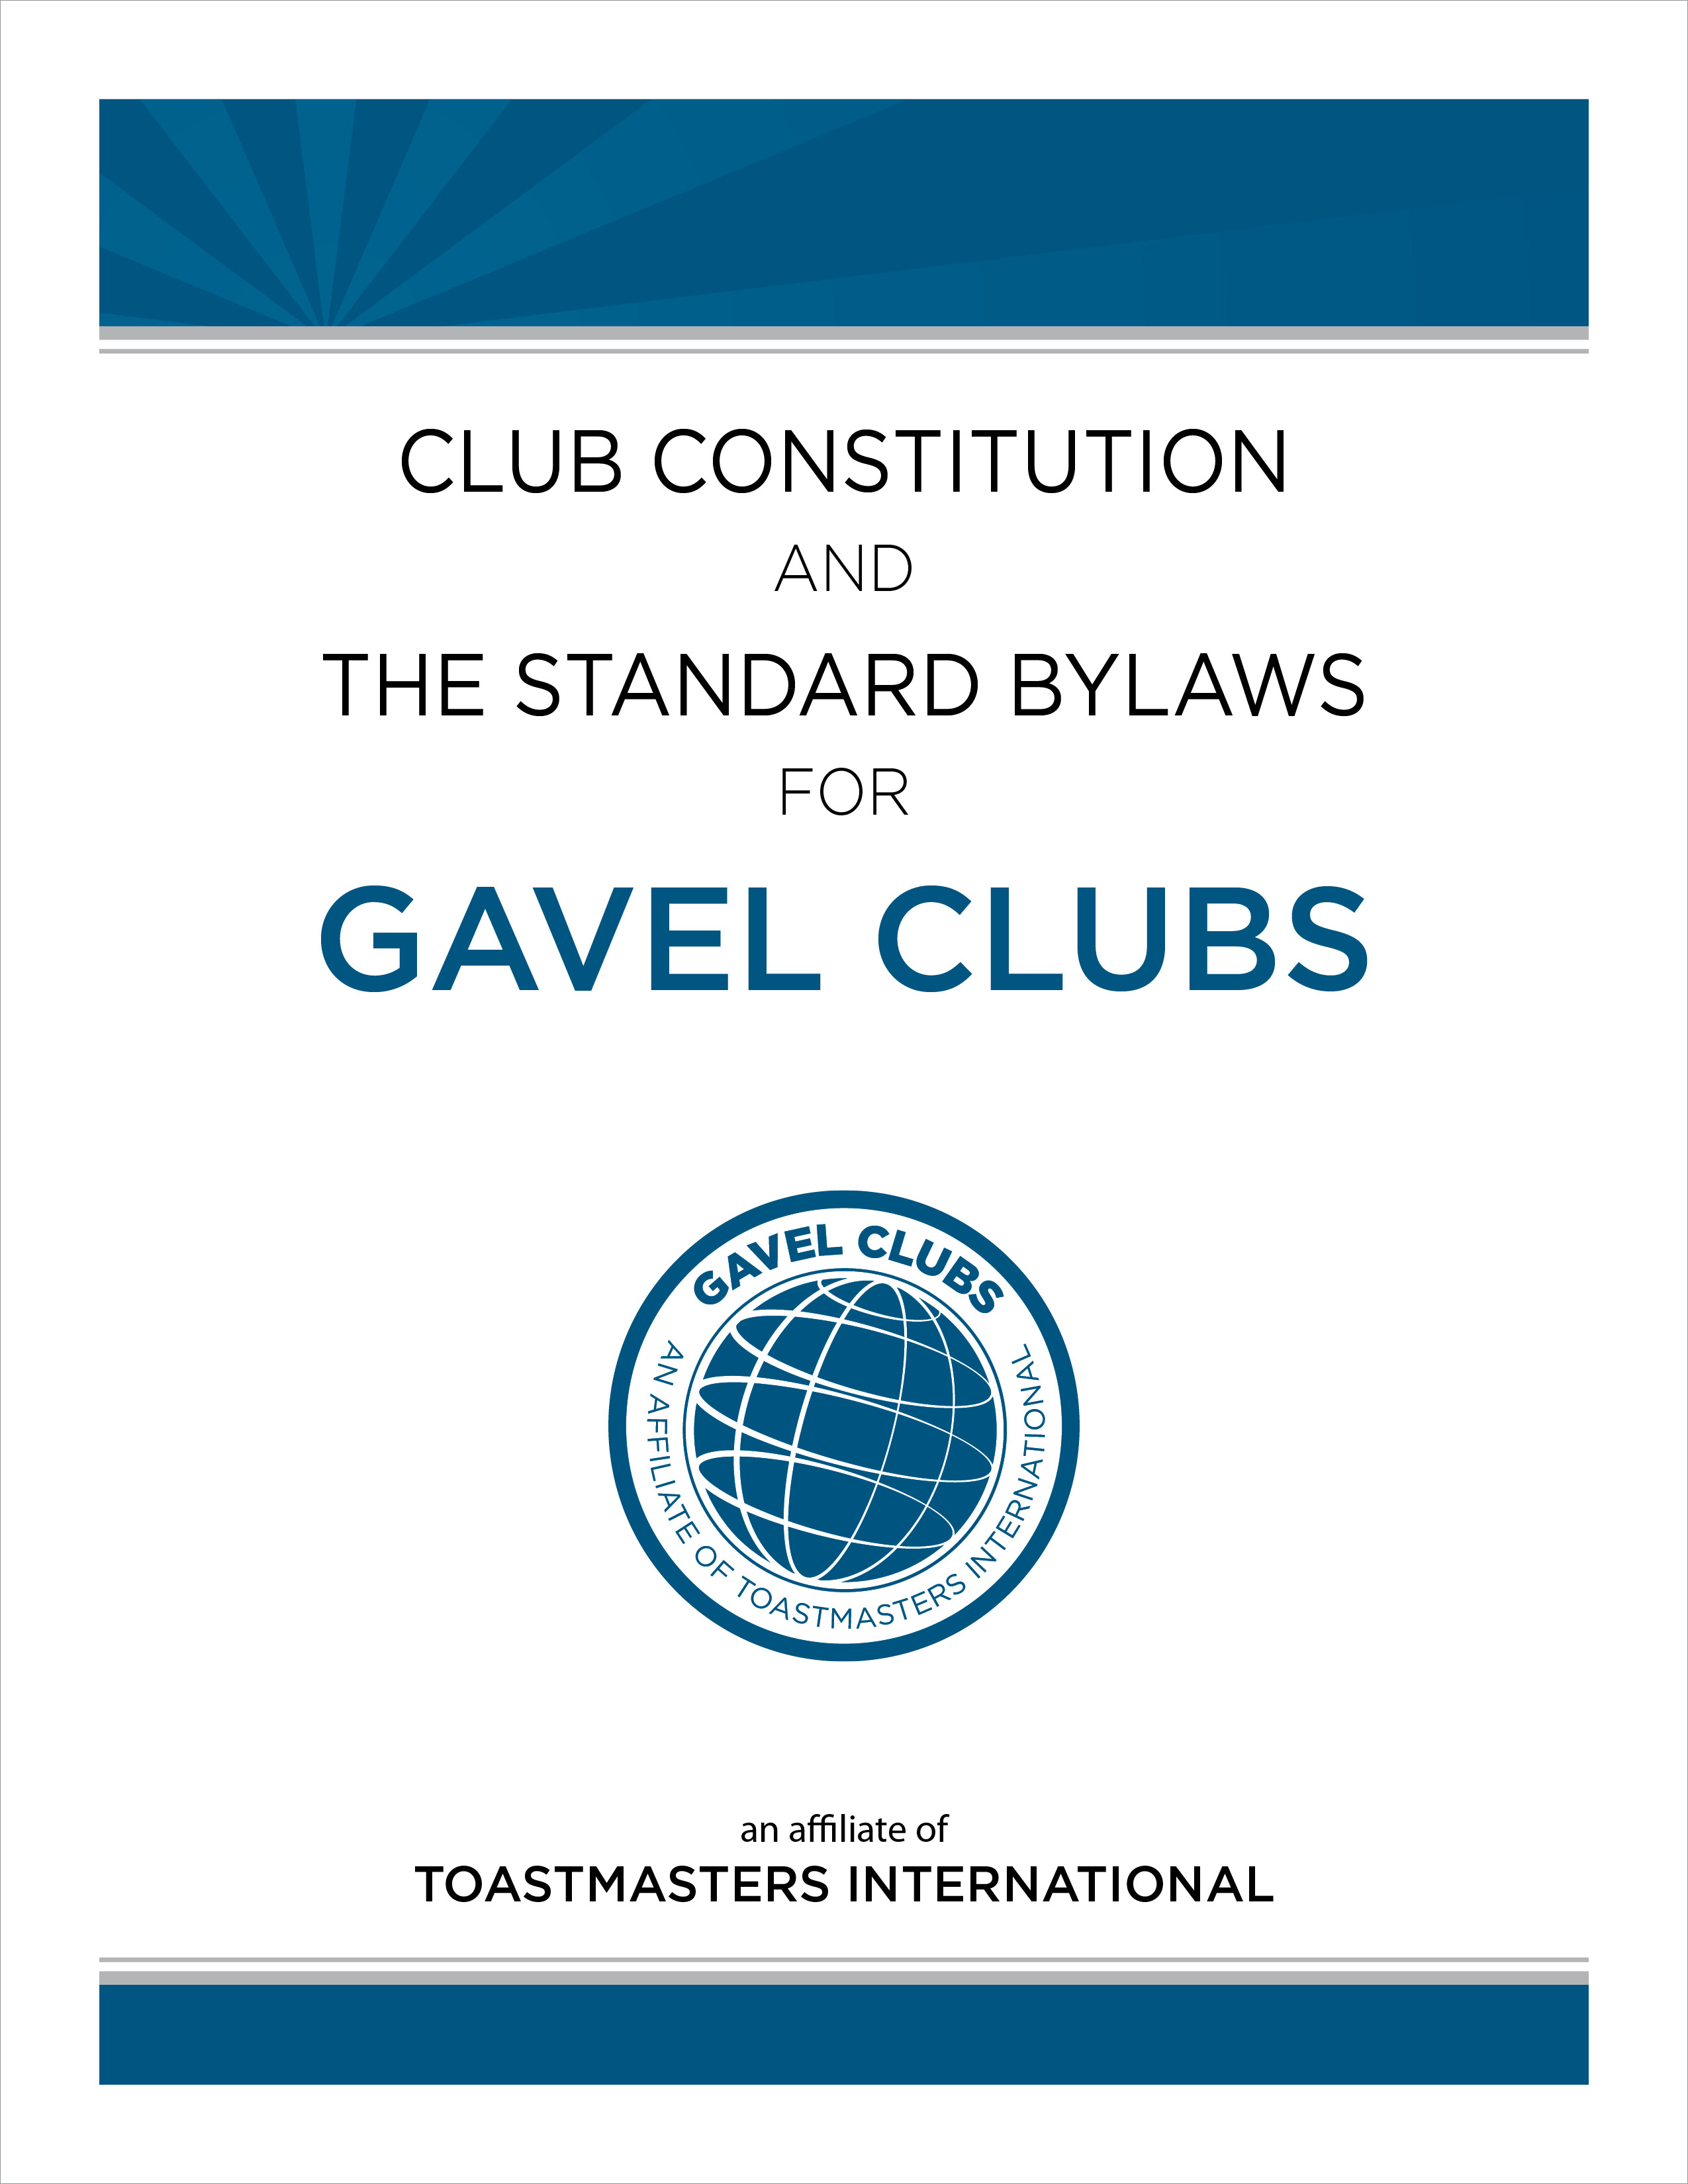 constitution and bylaws template - club constitution and the standard bylaws for gavel clubs